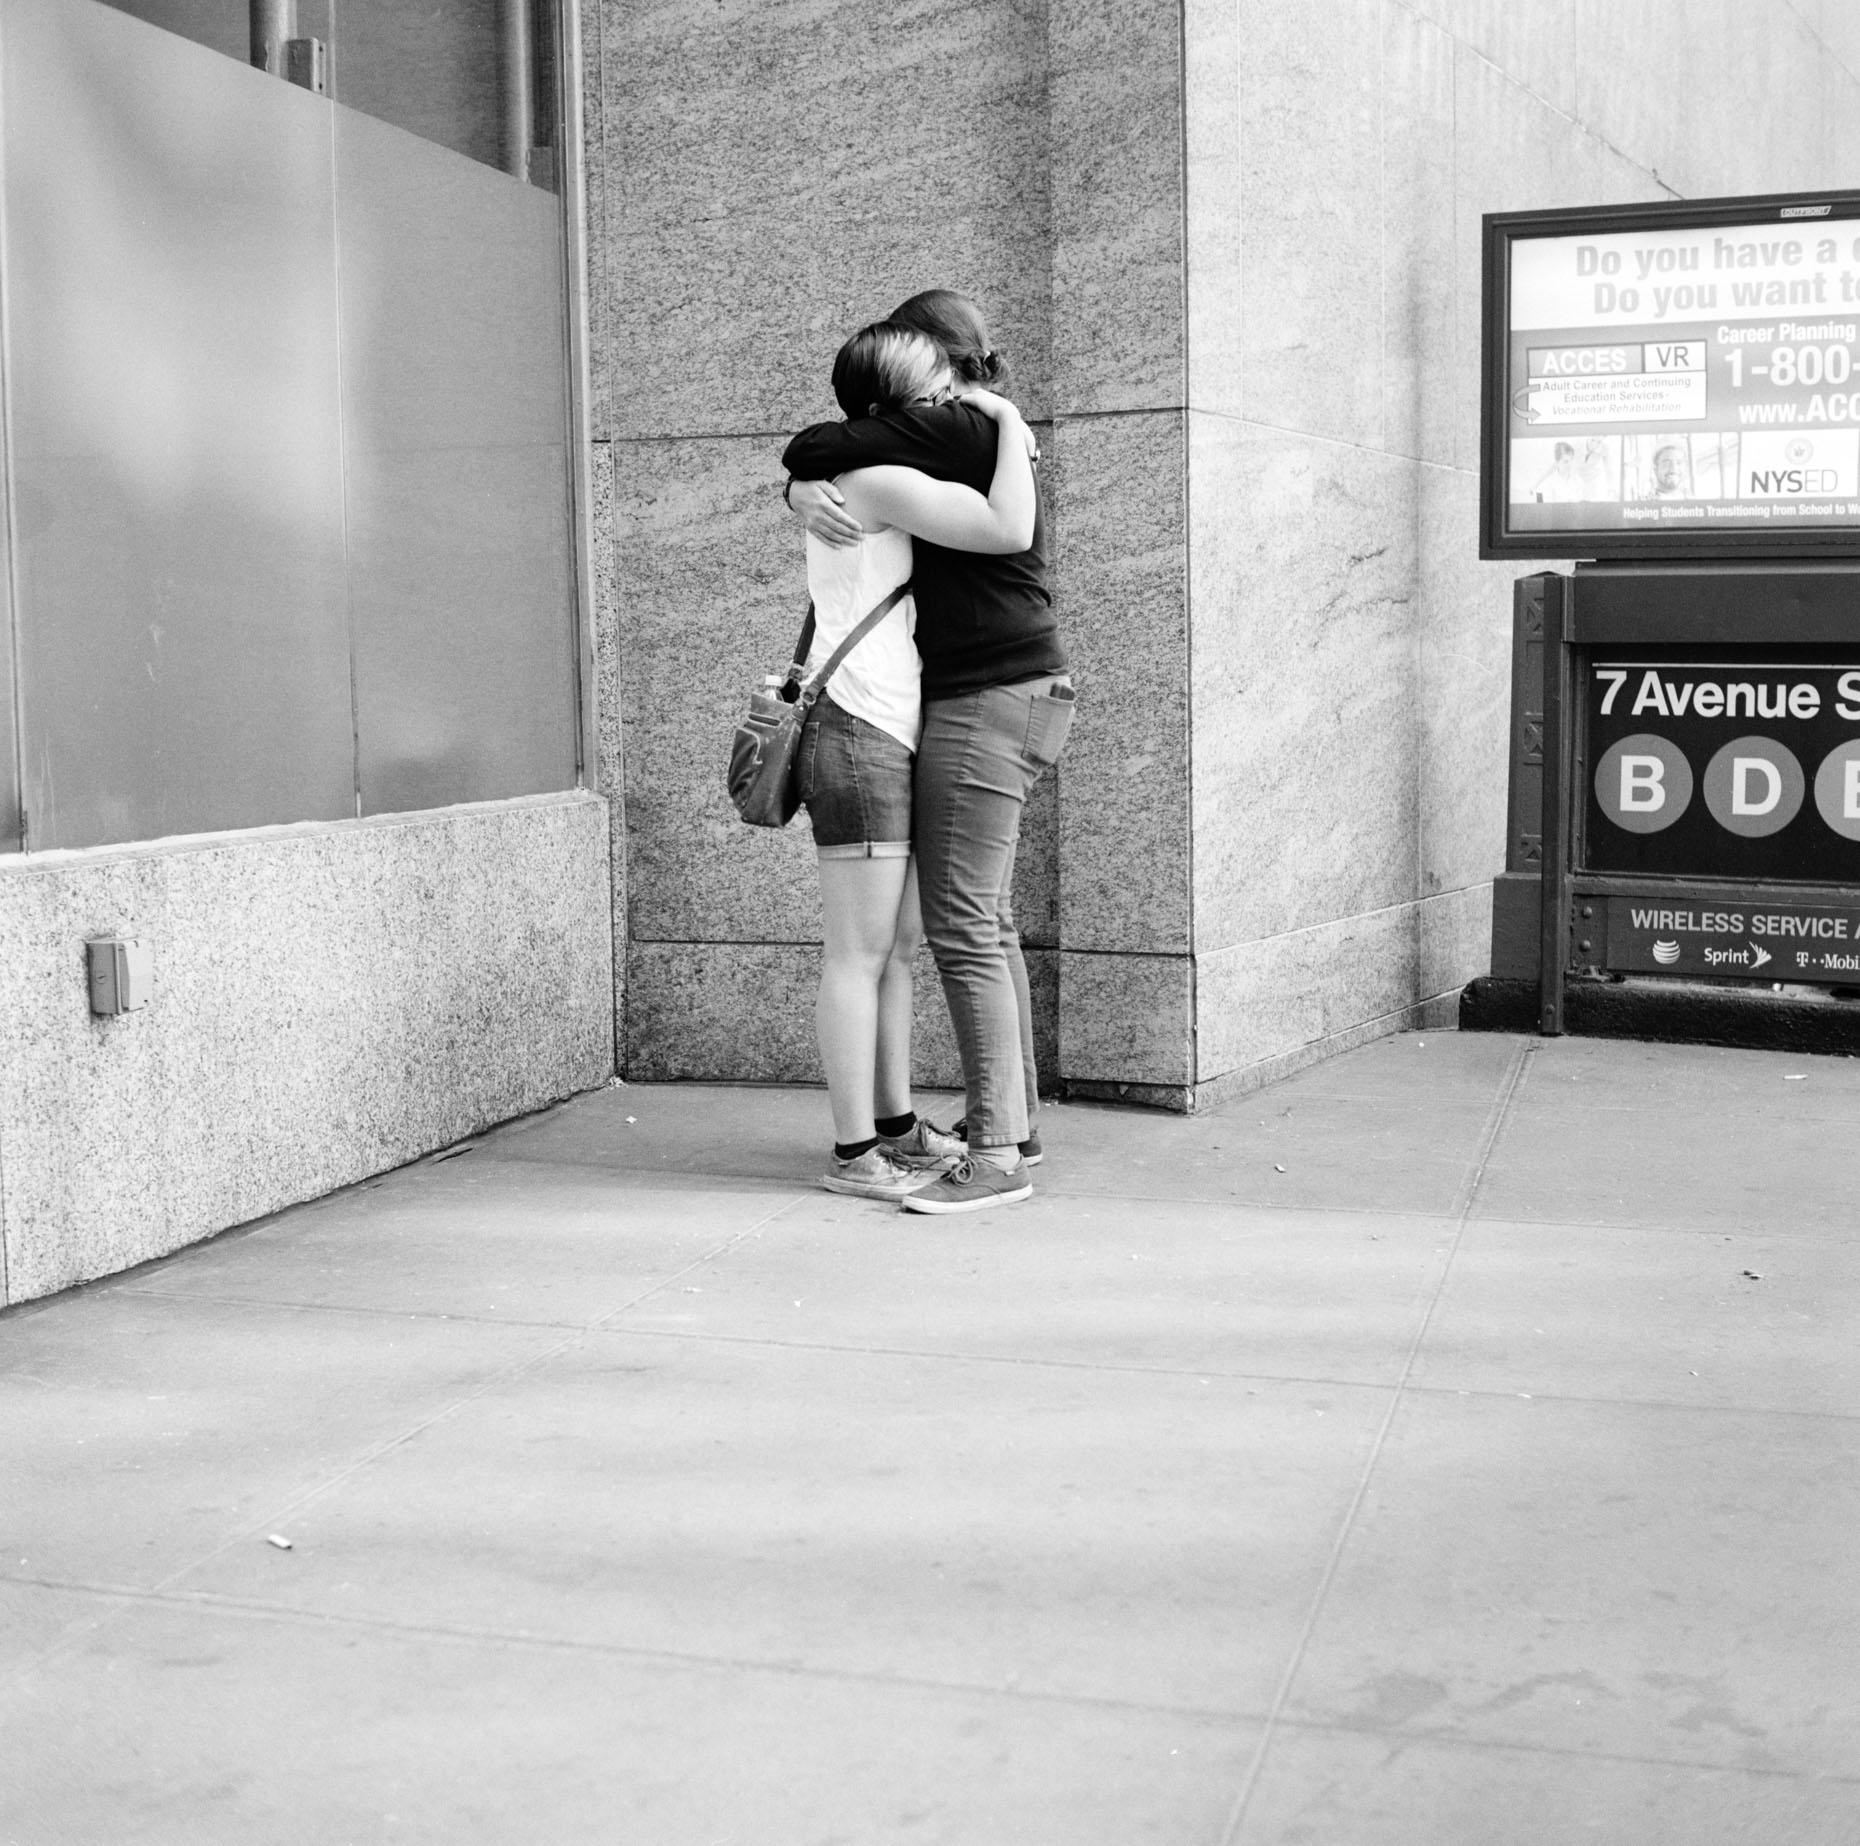 Black and white image of two women embracing  in midtown, New York city.